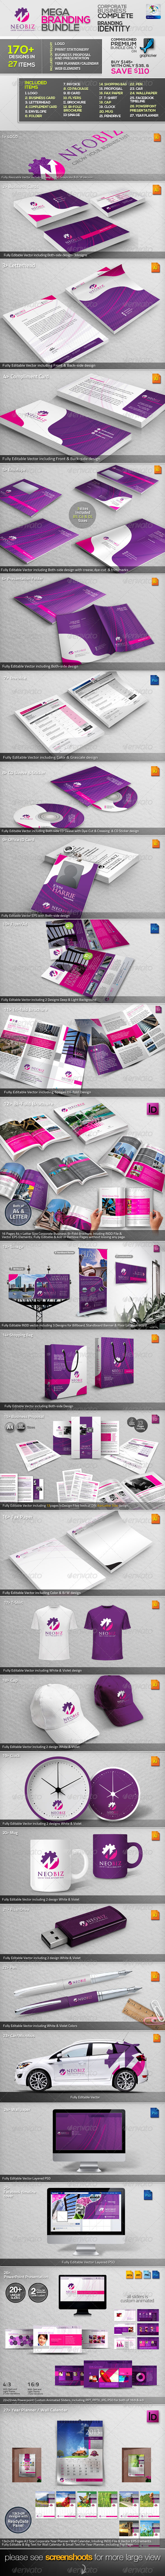 Modern Corporate Business Identity Package Stationery Templates Bundle